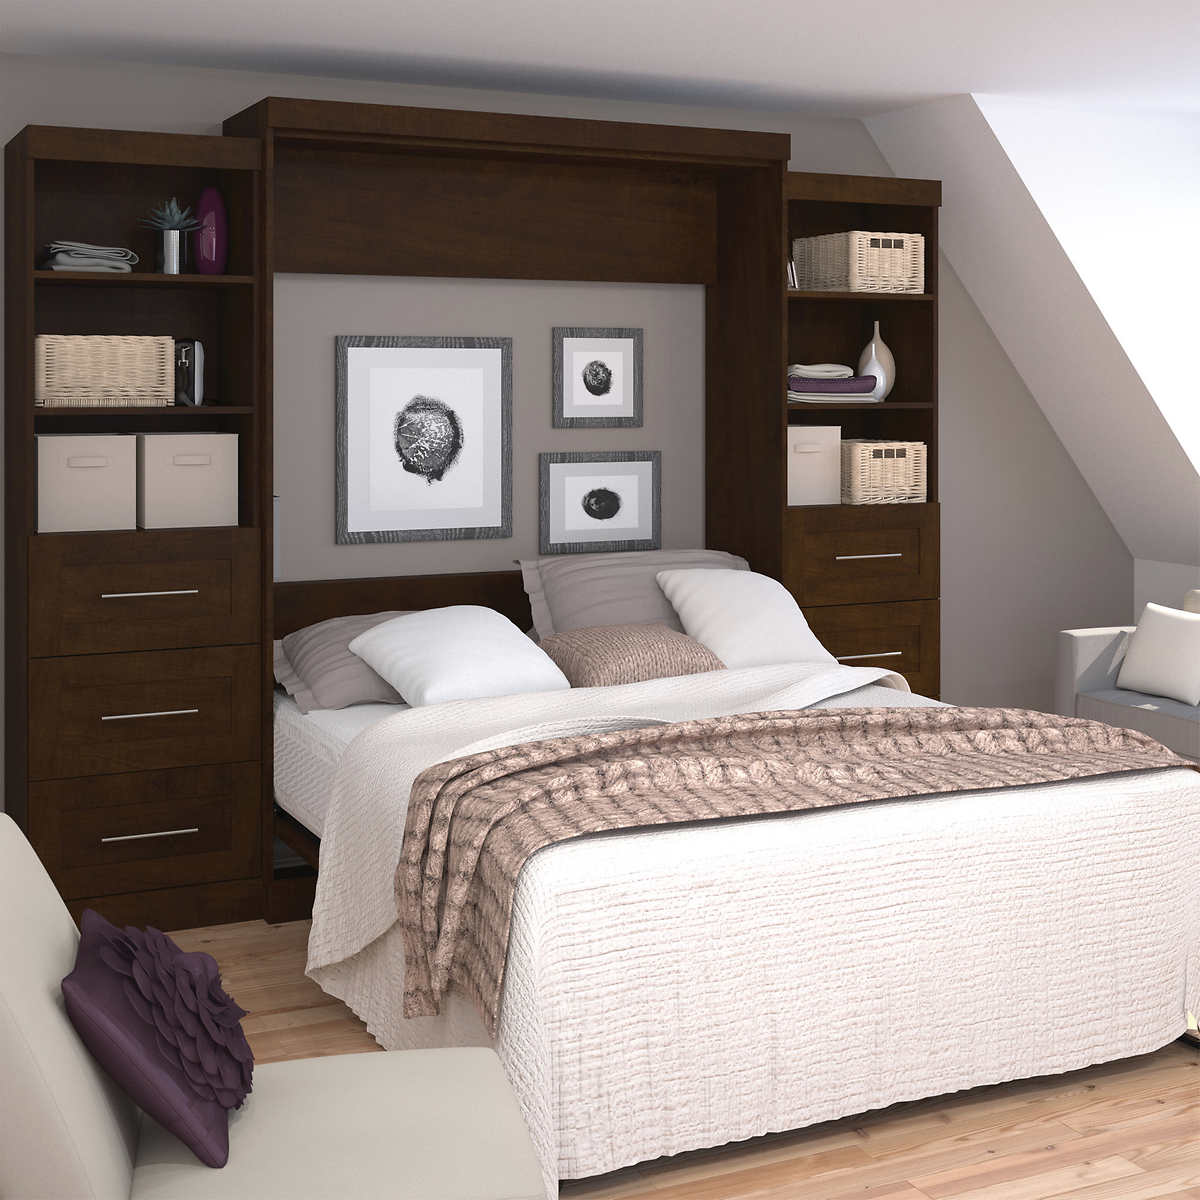 Boutique Queen Wall Bed With Two 25 Storage Units With Drawers In Brown